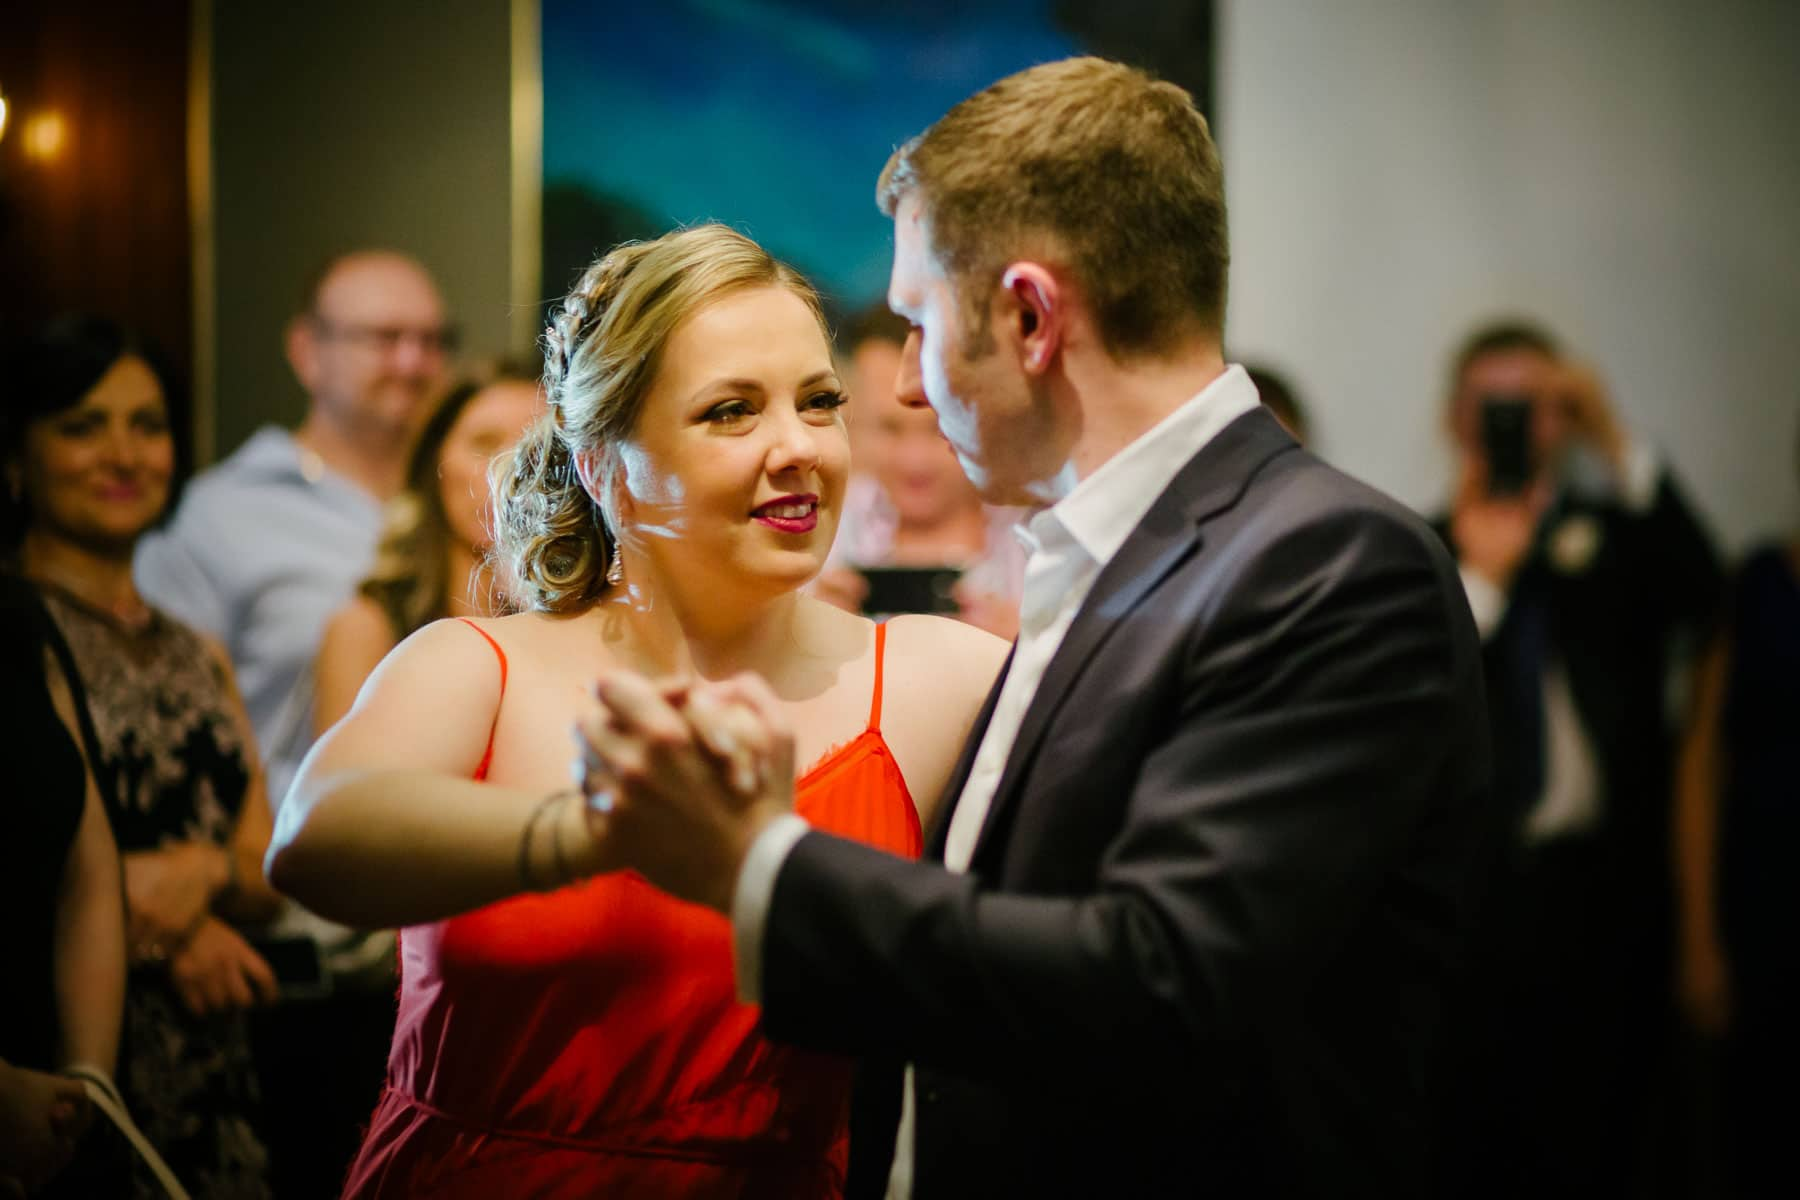 Medium shot of bride and groom dancing tango while guests watch at McClain House, Estates of Sunnybrook.